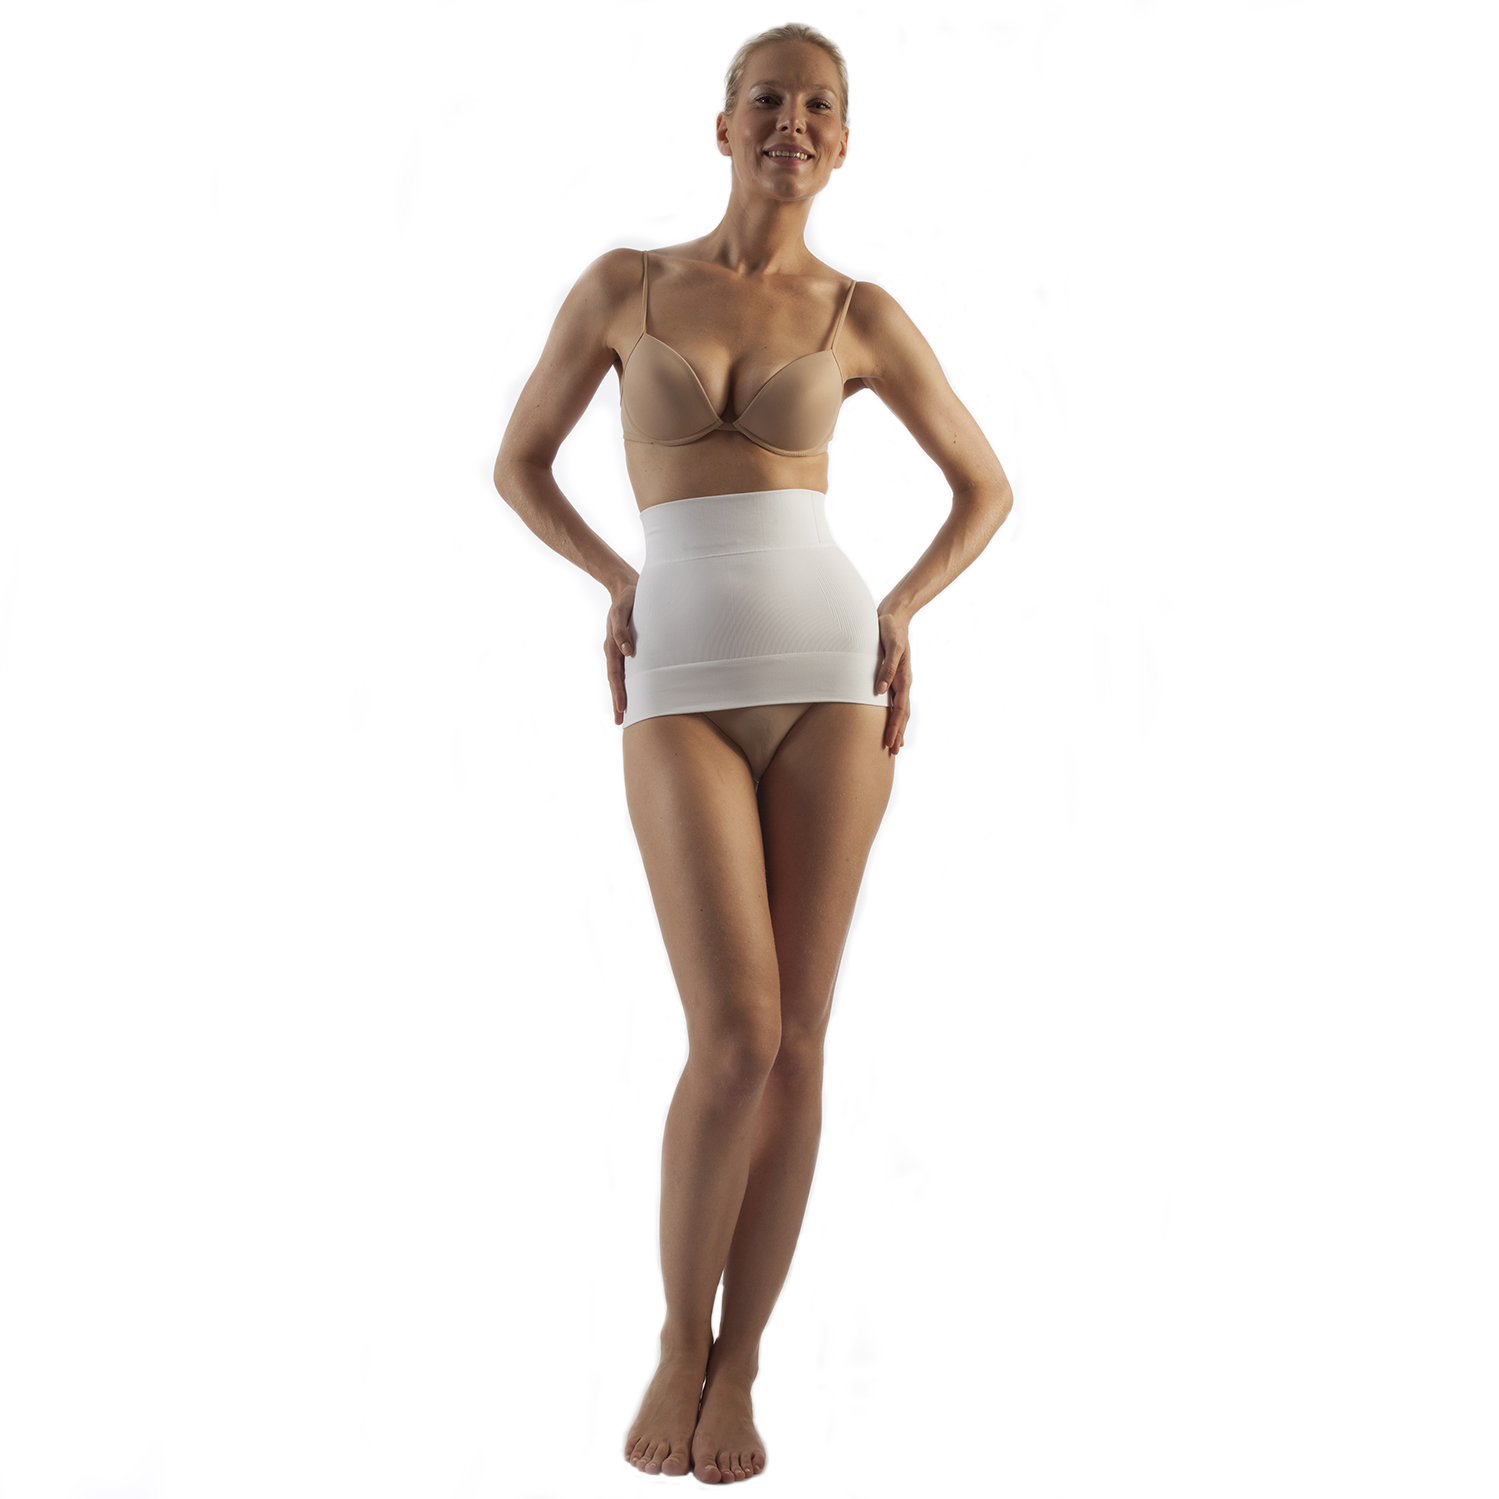 GABRIALLA Style BSM-705 Seamless Milk Fiber Body Shaping Abdominal Support Binder